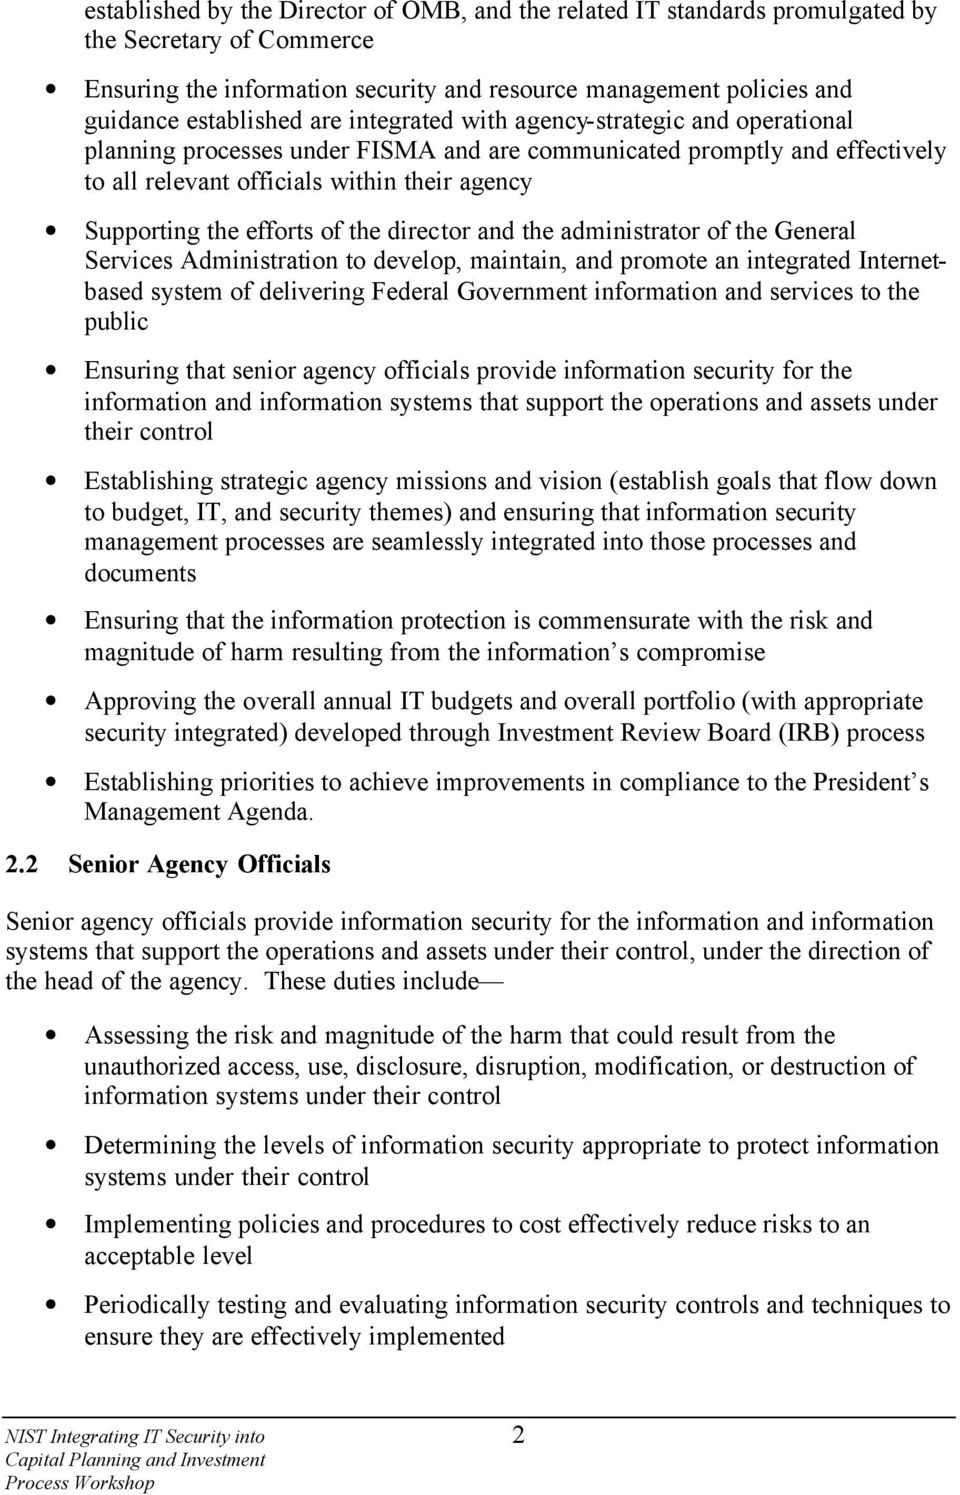 of the director and the administrator of the General Services Administration to develop, maintain, and promote an integrated Internetbased system of delivering Federal Government information and